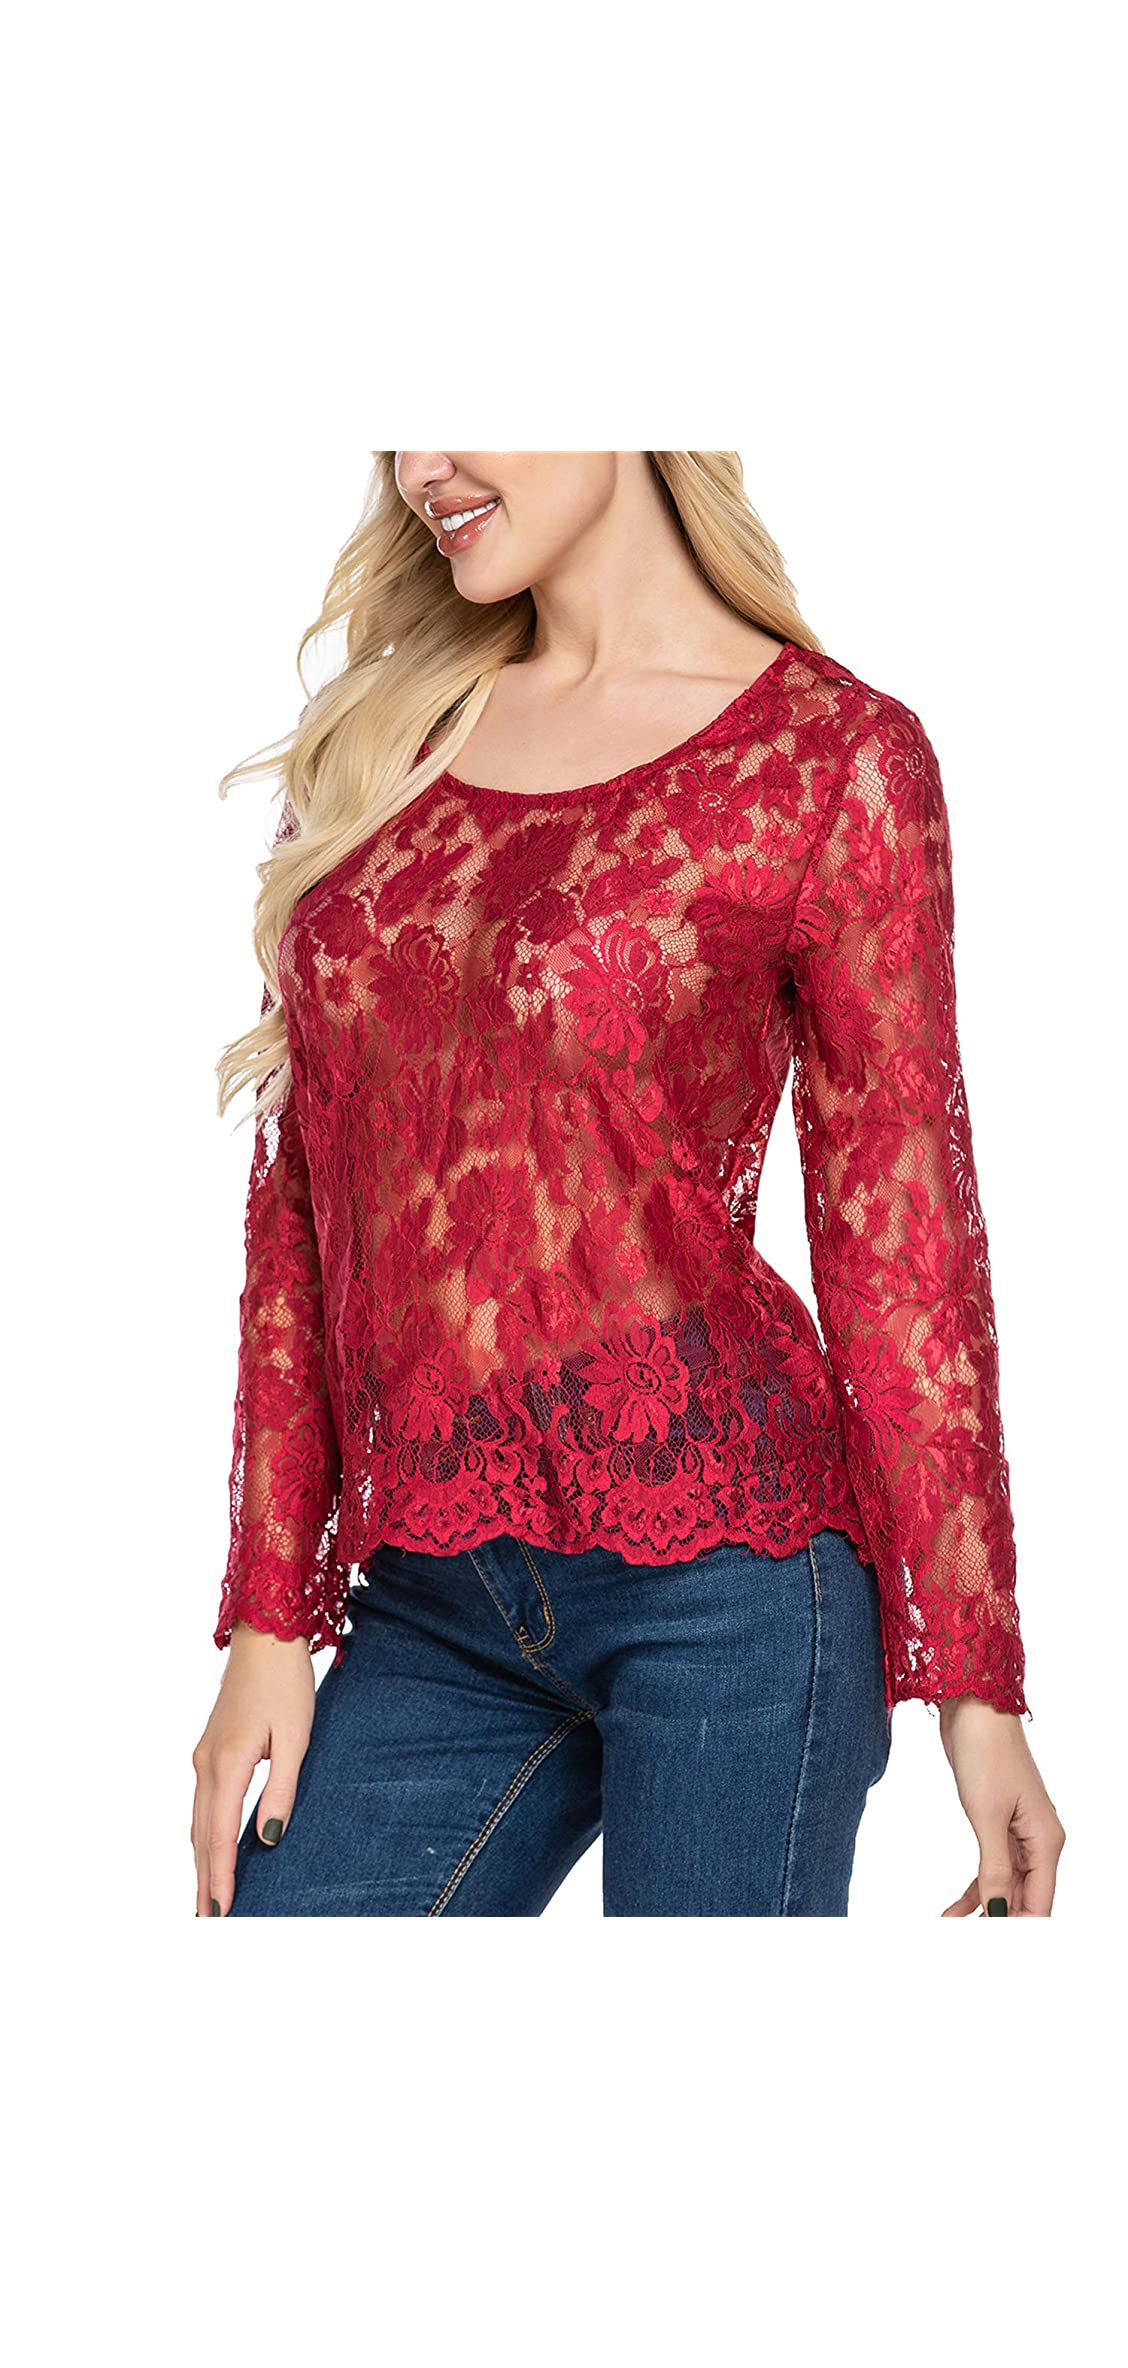 Women's Long Sleeve Sexy Sheer Floral Lace Blouse Top